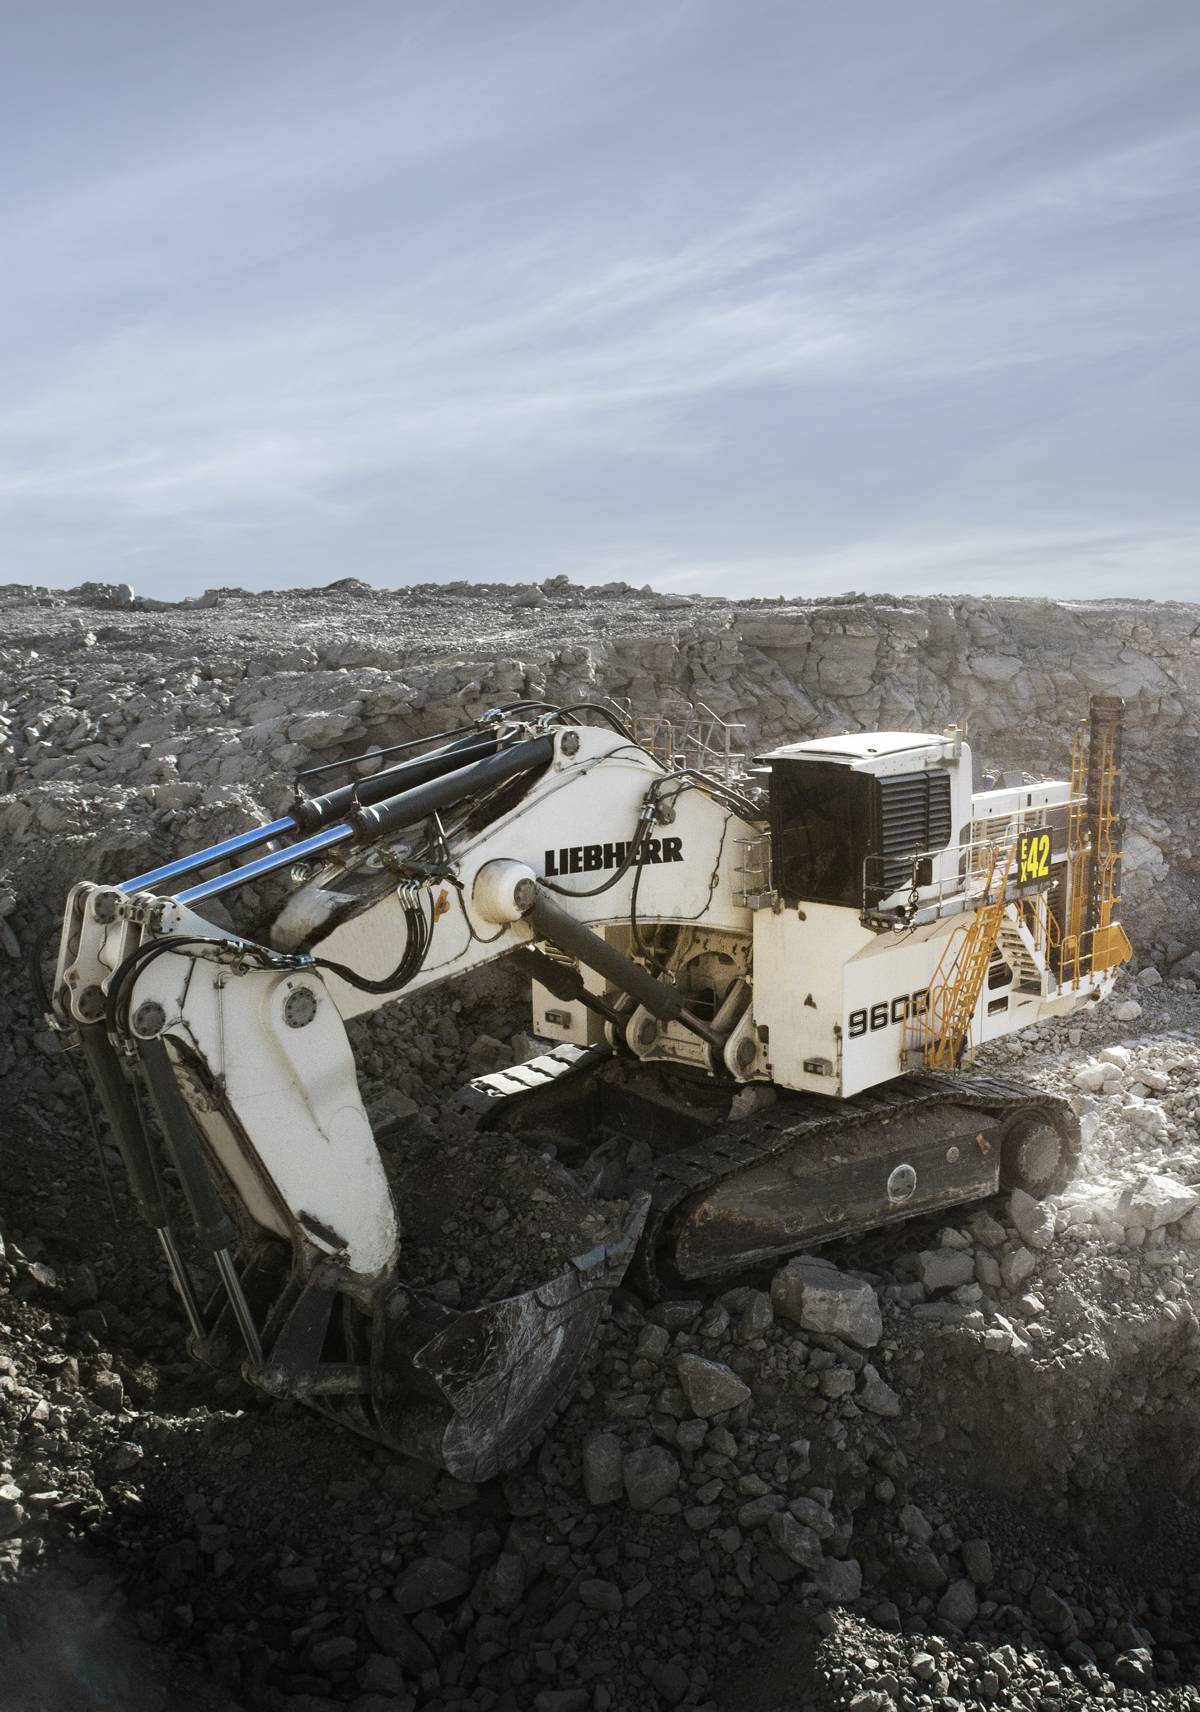 The R 9600 excavator is equipped with Liebherr Power Efficiency, Assistance Systems, and Bucket Filling Assistant.